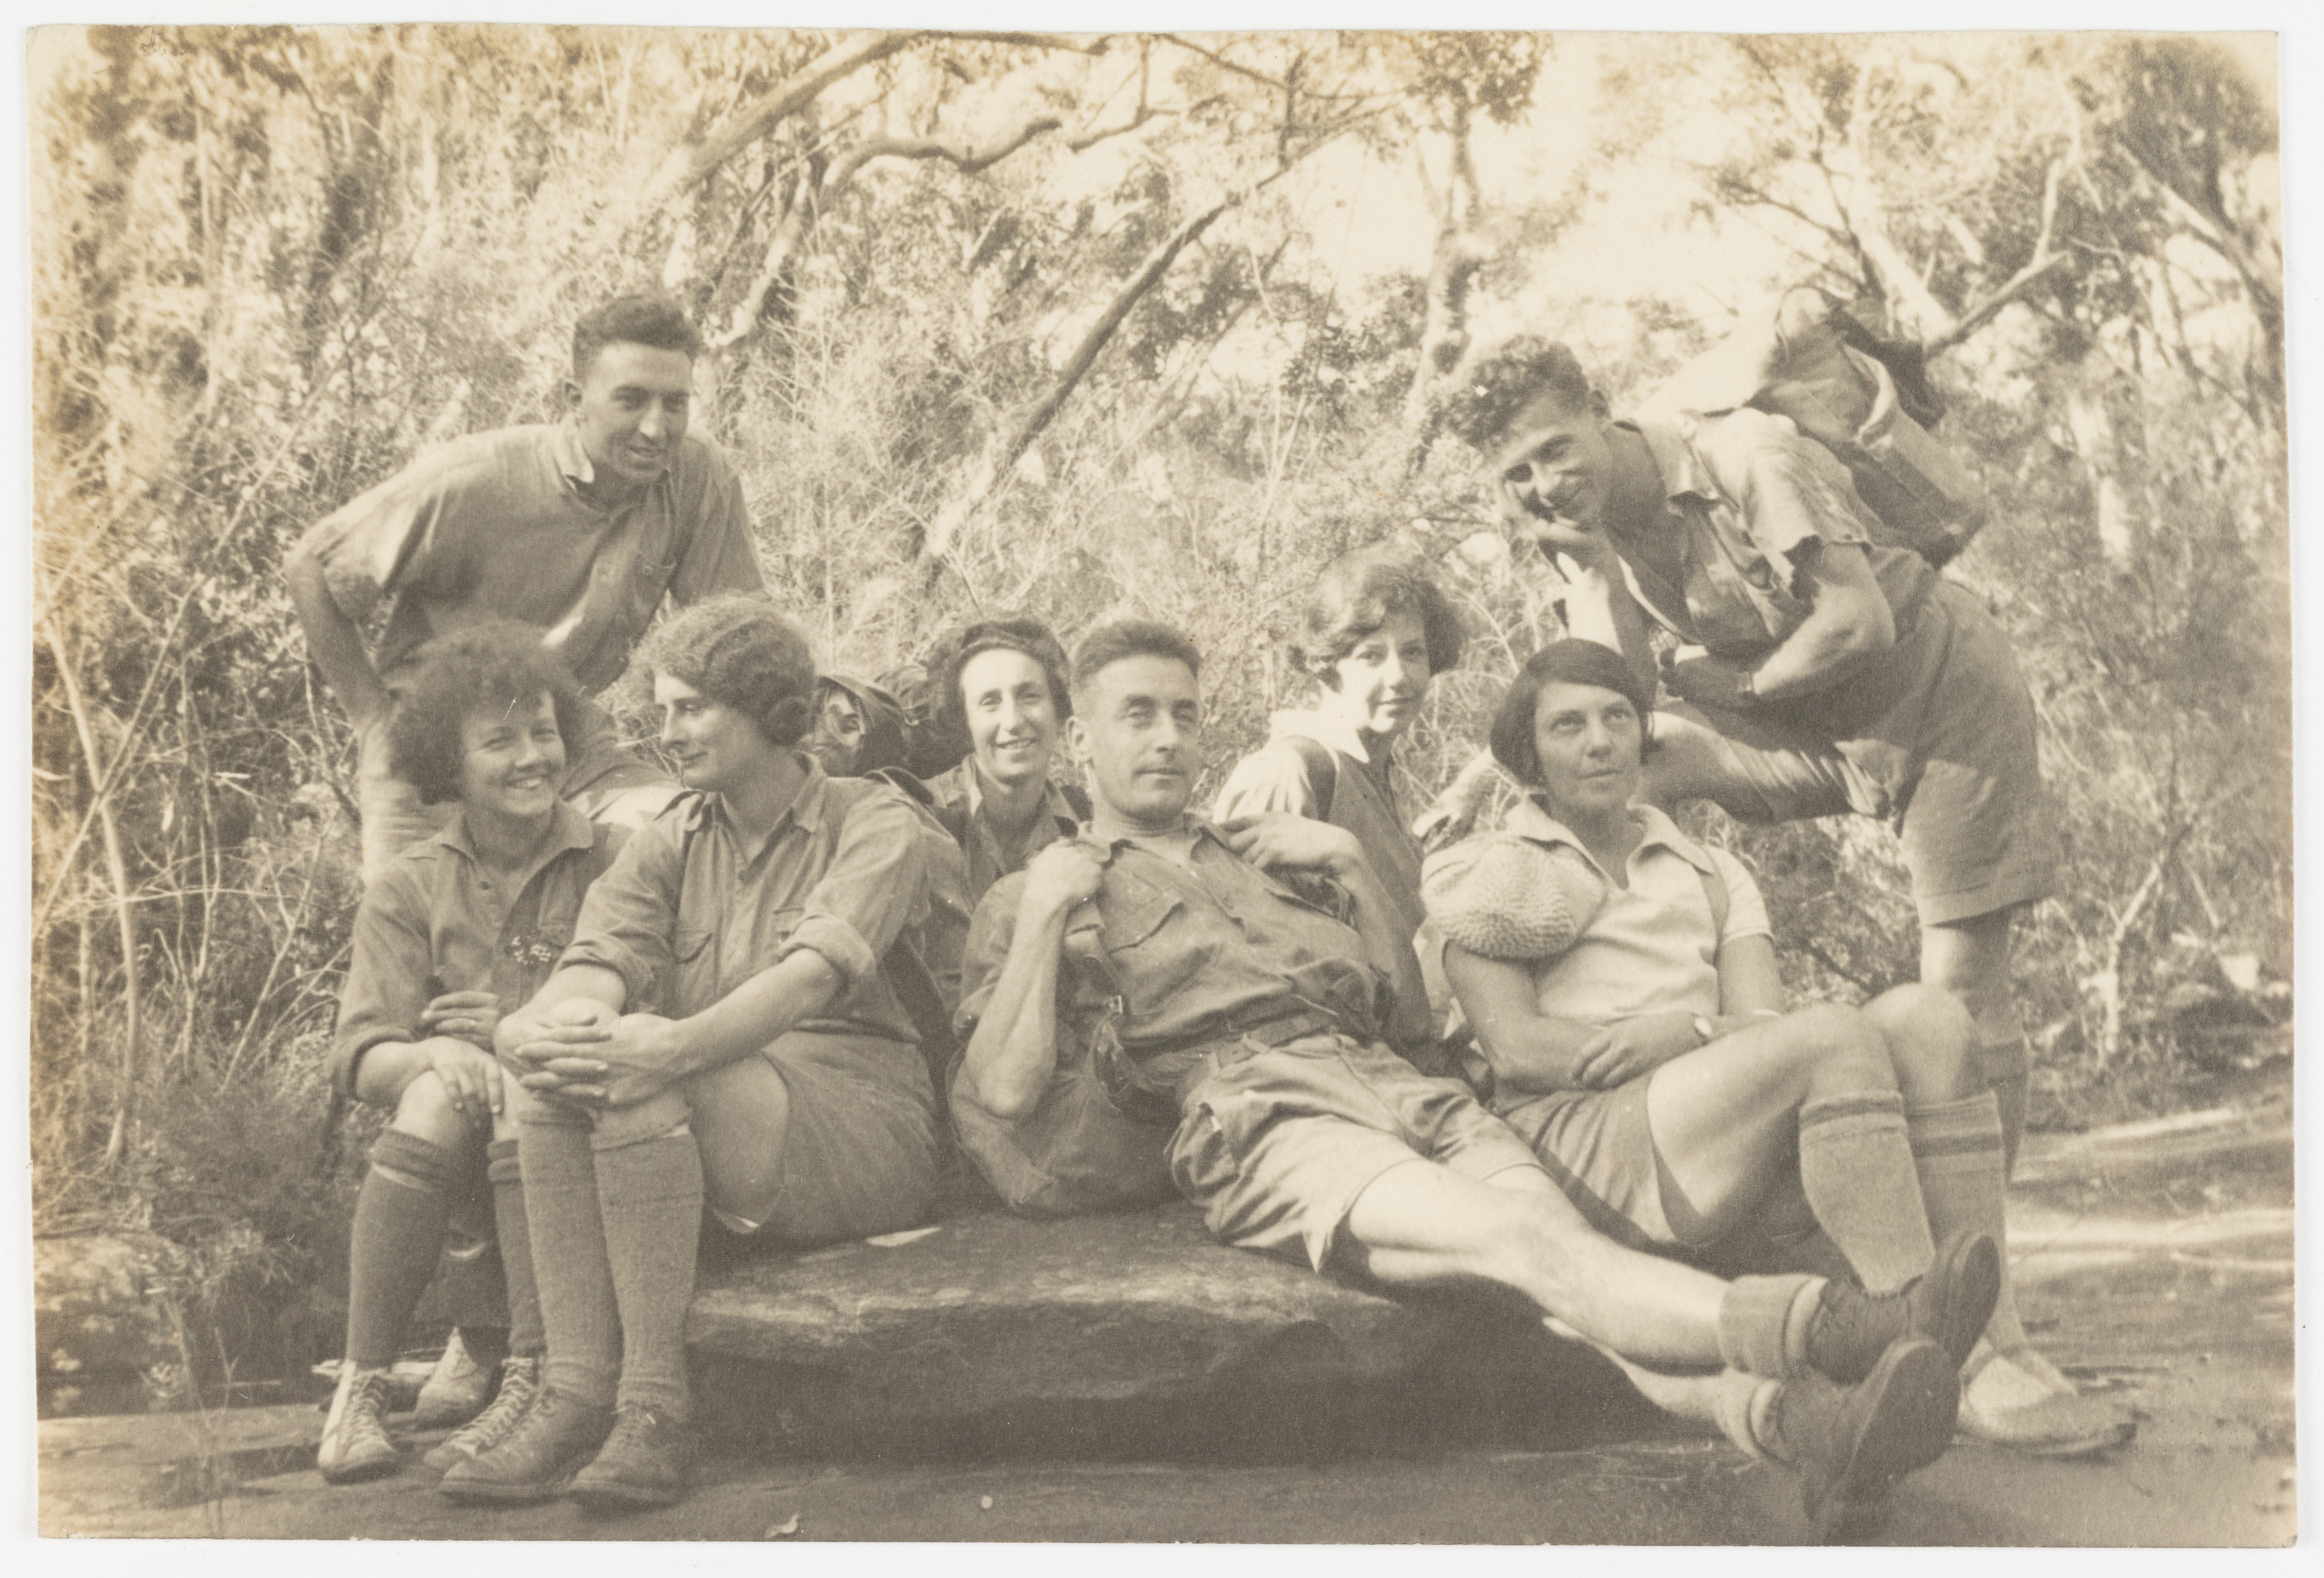 Sydney Bush Walkers Club in Blue Mountains and Camping at North Era Beach, c 1925-1935